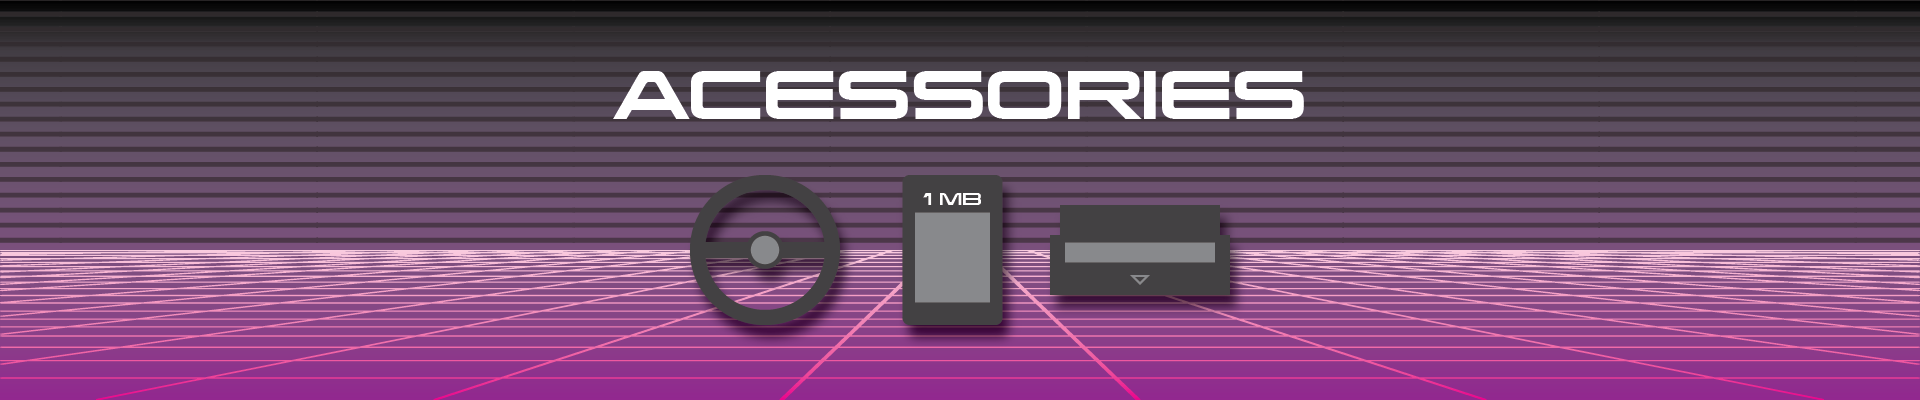 Accessories, memory, cards, plugs, wires